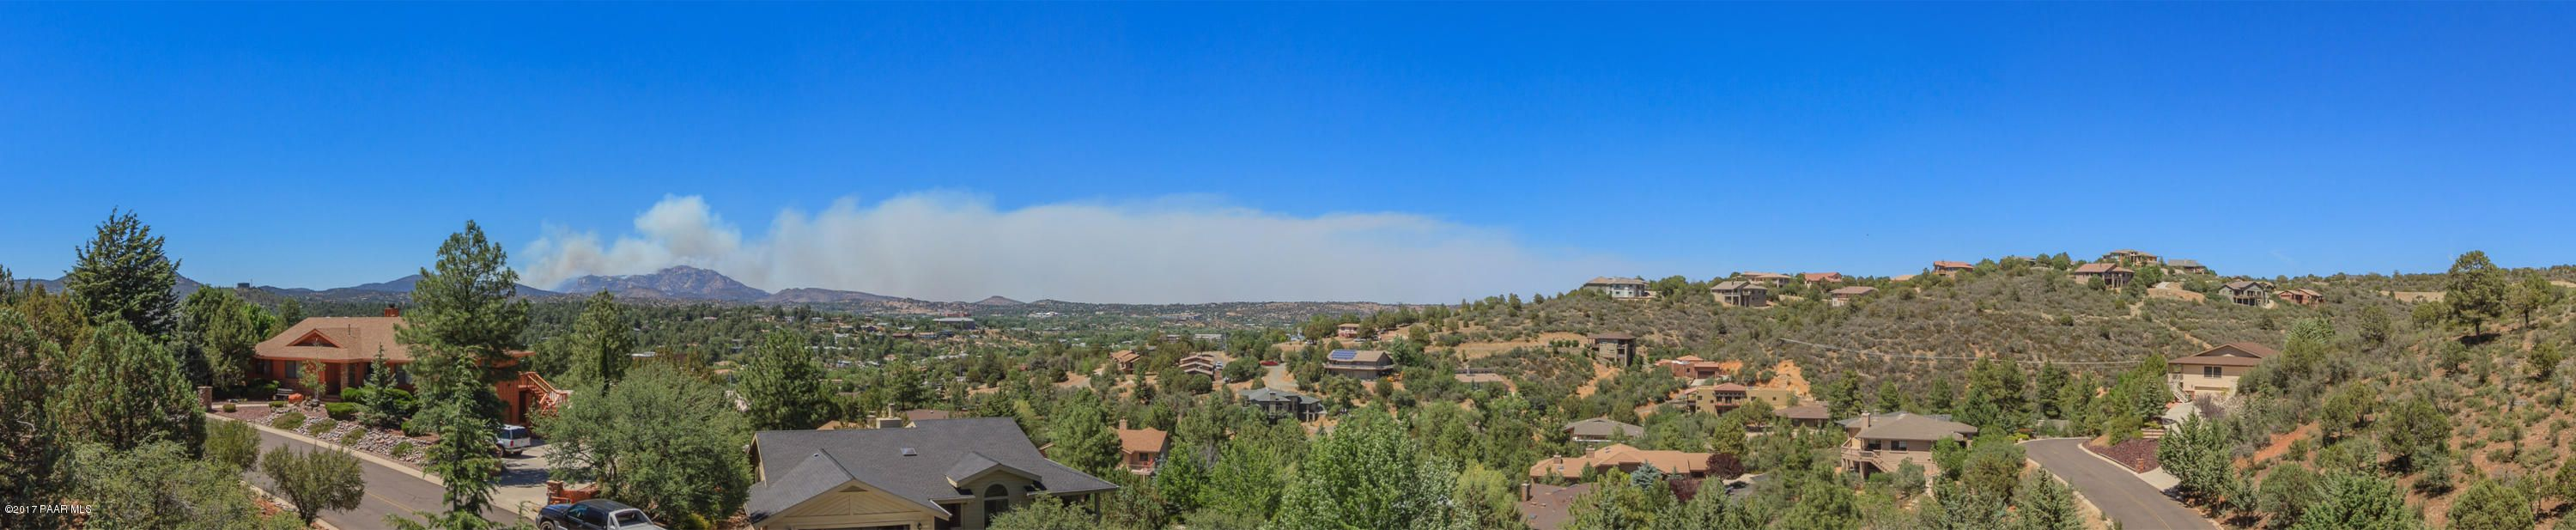 1005 Northwood Loop Prescott, AZ 86303 - MLS #: 1008017